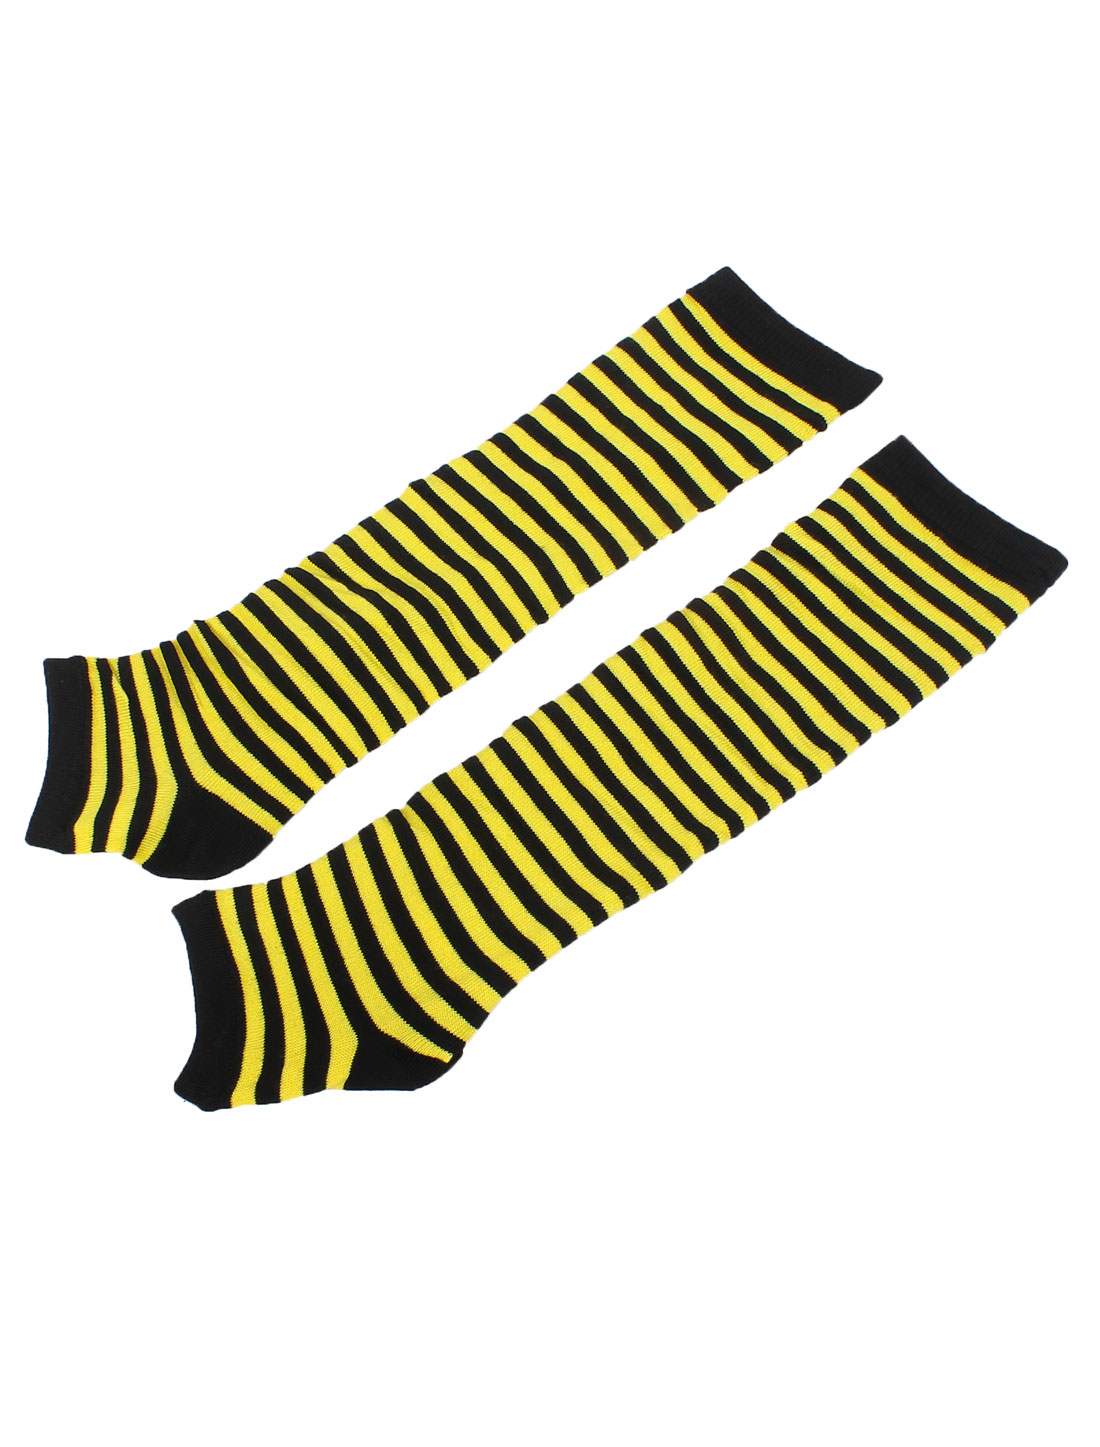 Women Black Yellow Stretchy Toeless Knee High Knitted Leg Warmer w Boat Socks 2 Pair Set